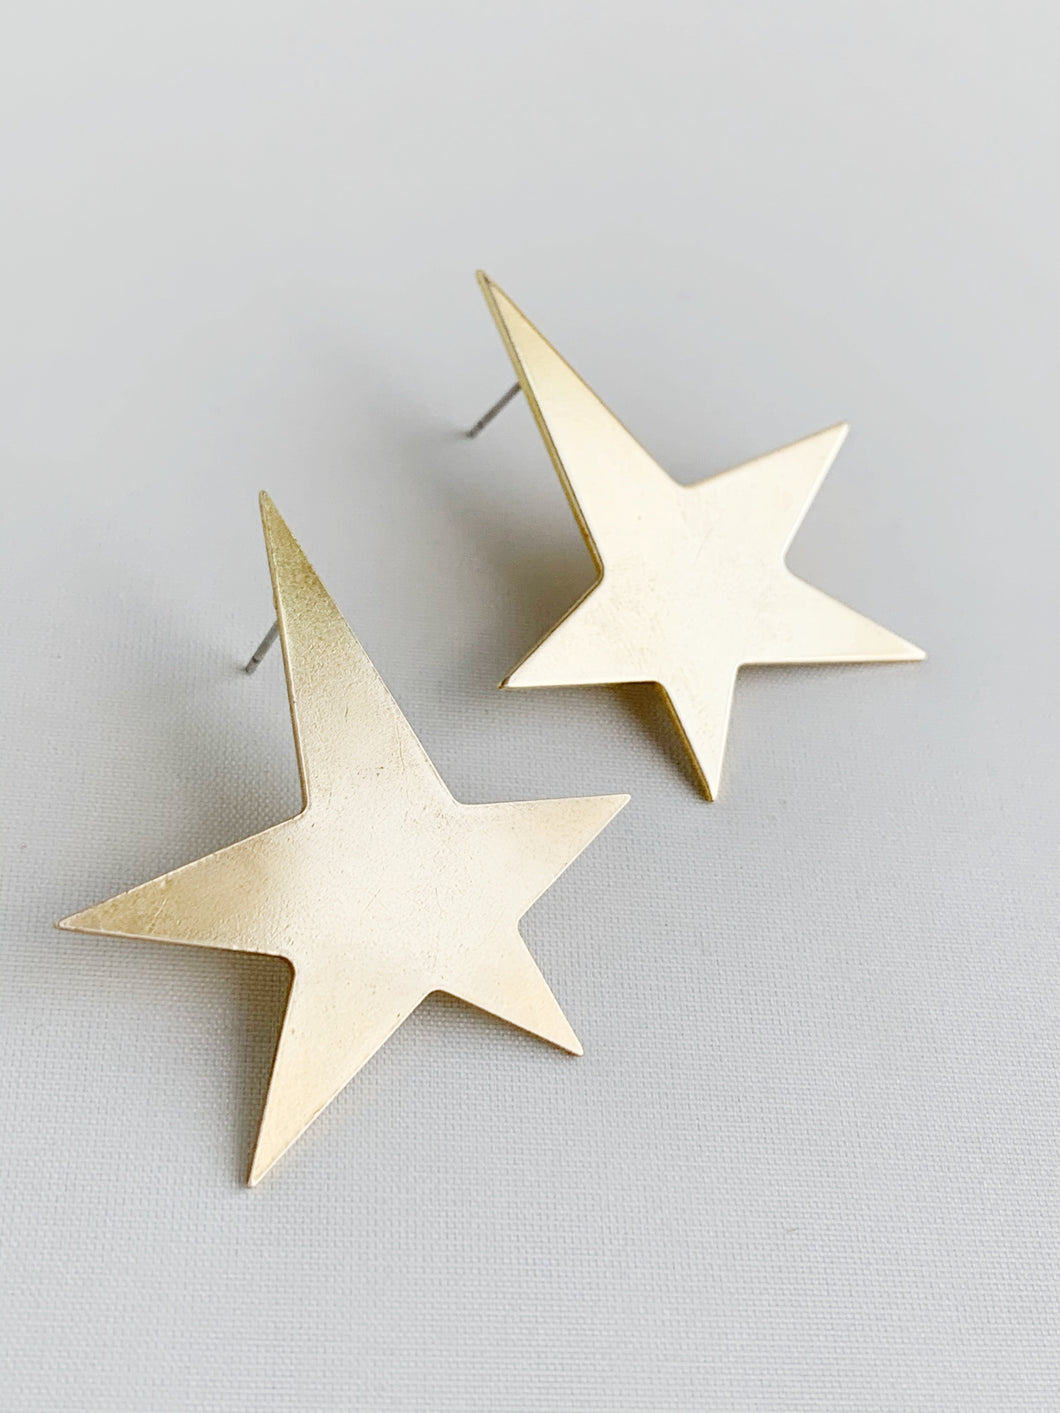 ABSTRACT OVERSIZED GOLD STAR EARRINGS